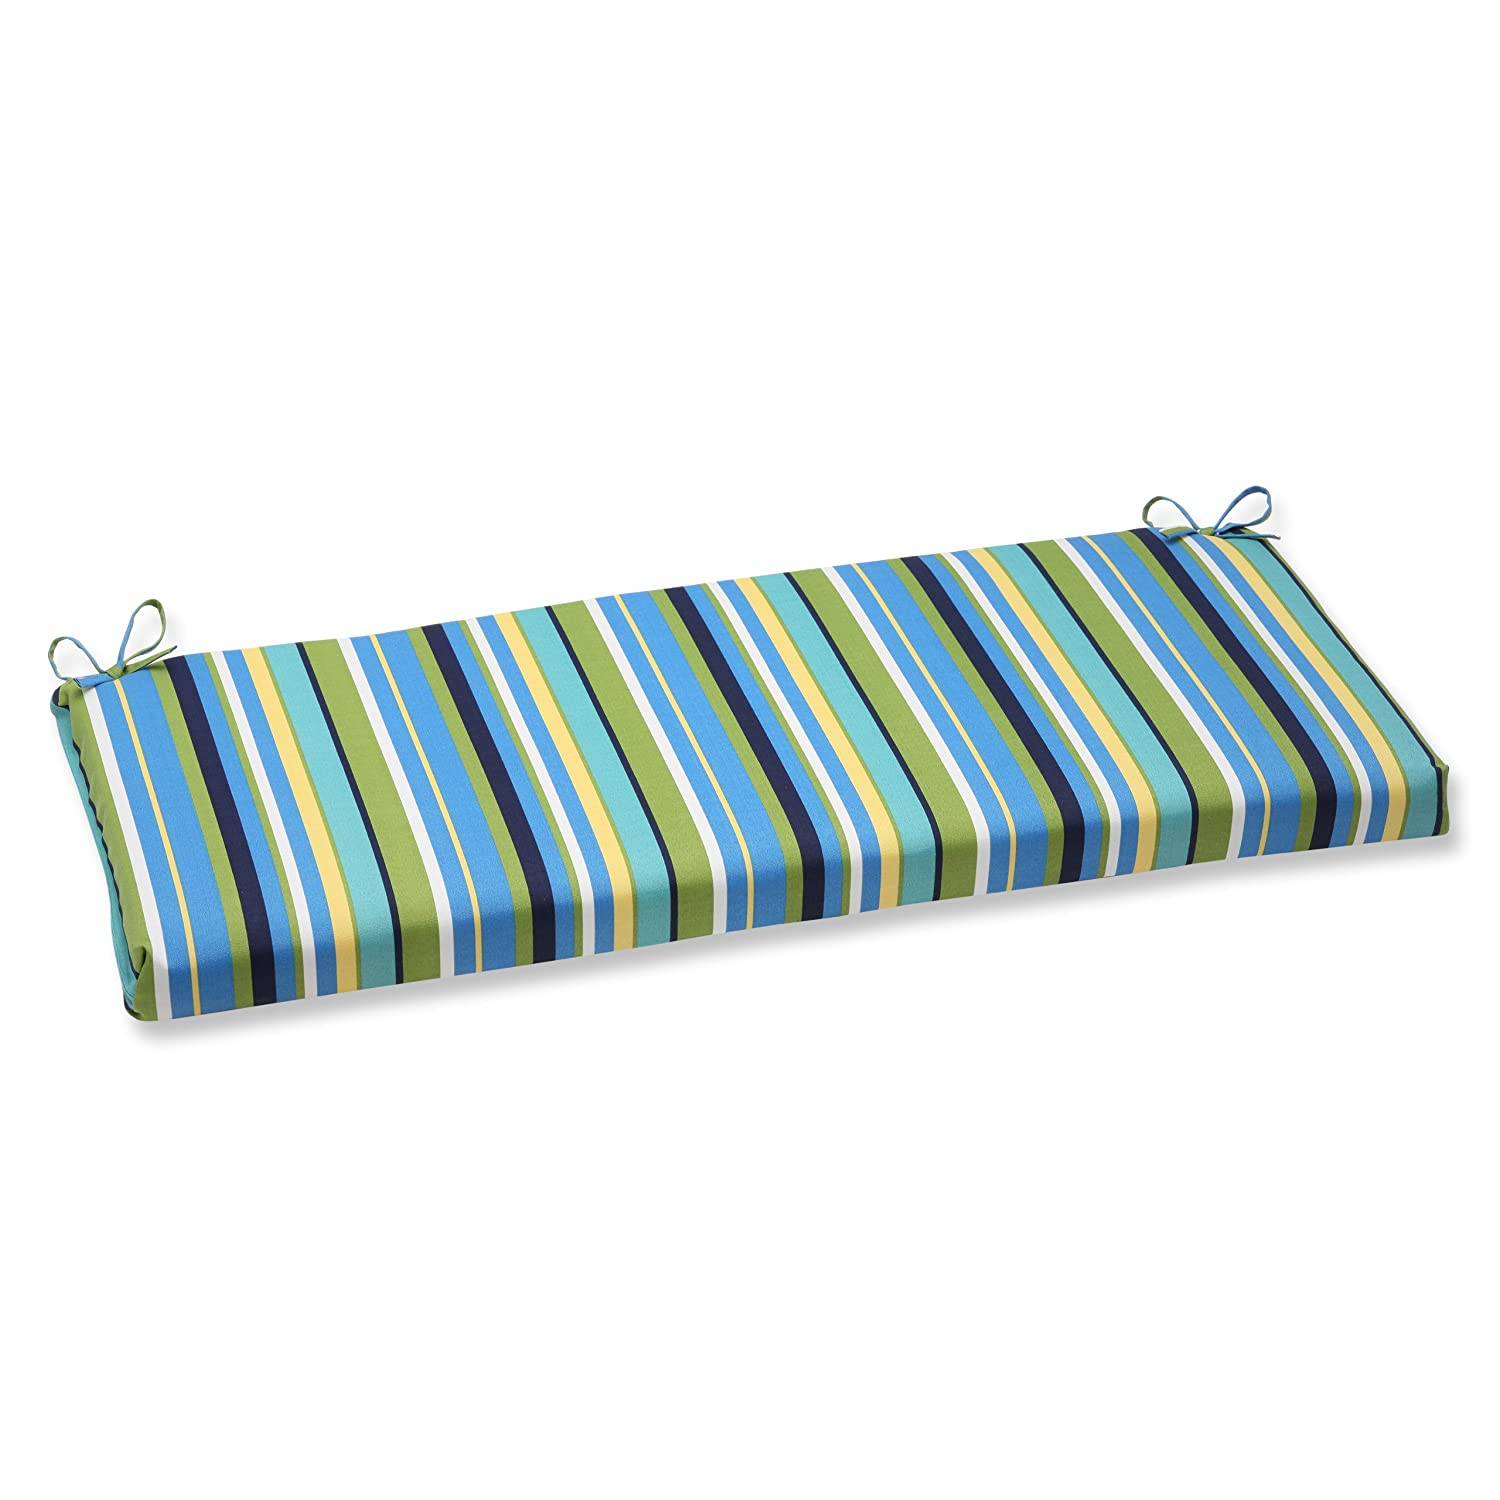 Pillow Perfect Indoor/Outdoor Forsyth Bench Cushion, Turquoise Inc. 507118